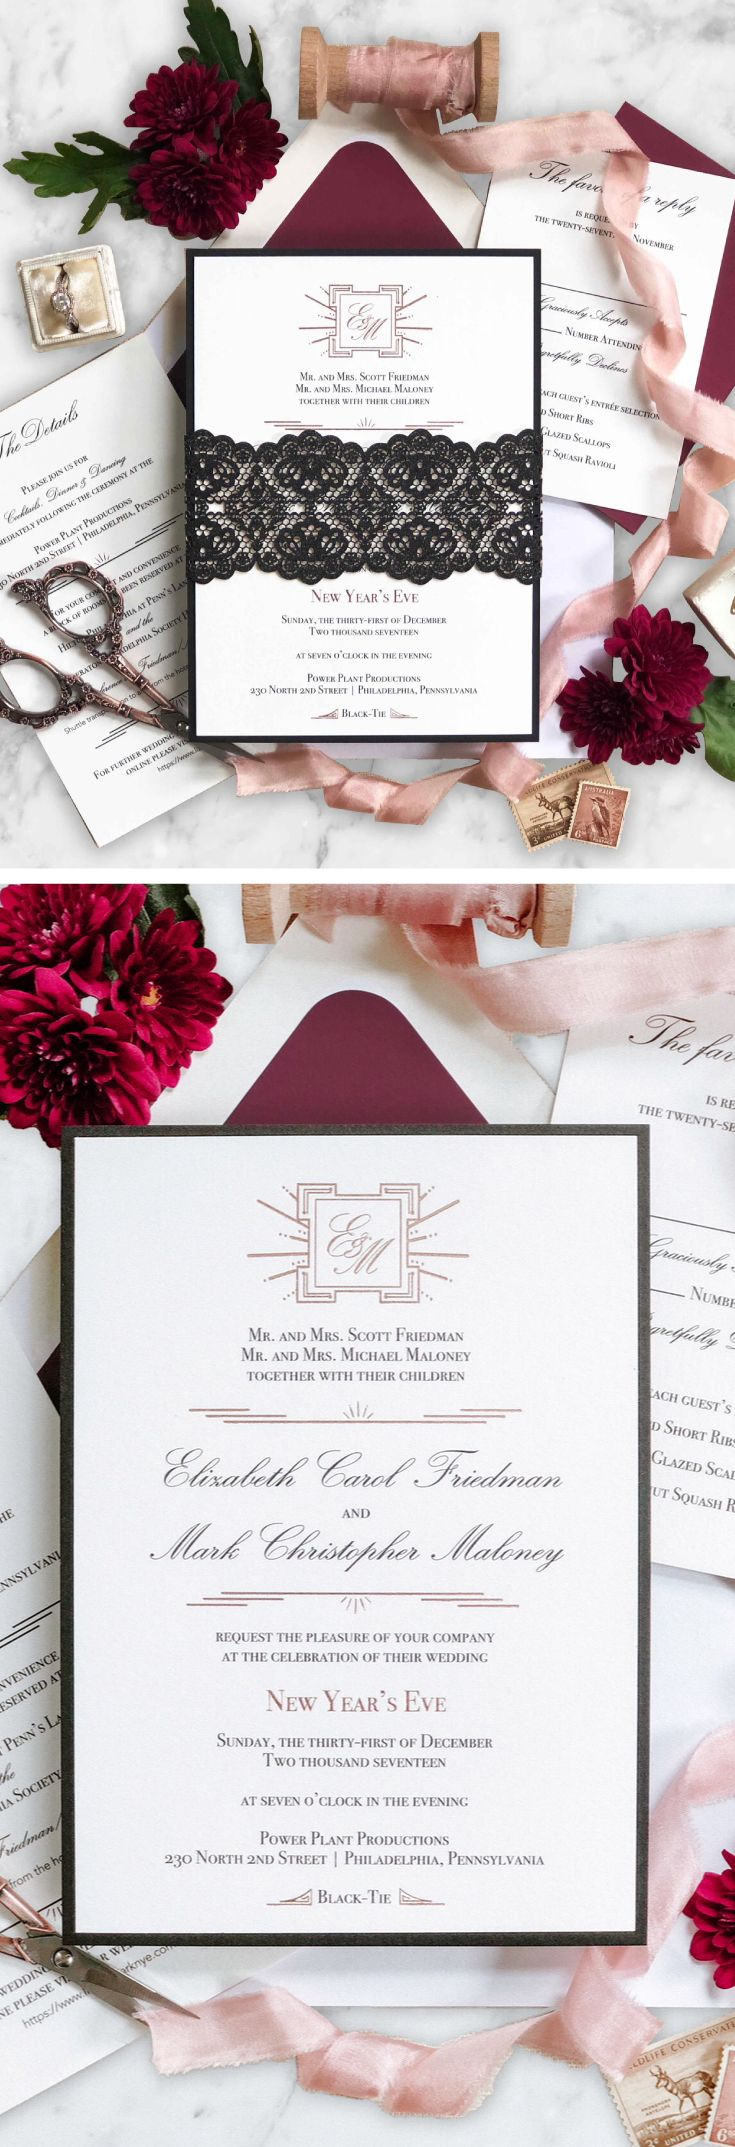 17 Best Our Wedding Invitation Designs Images On Pinterest Wedding